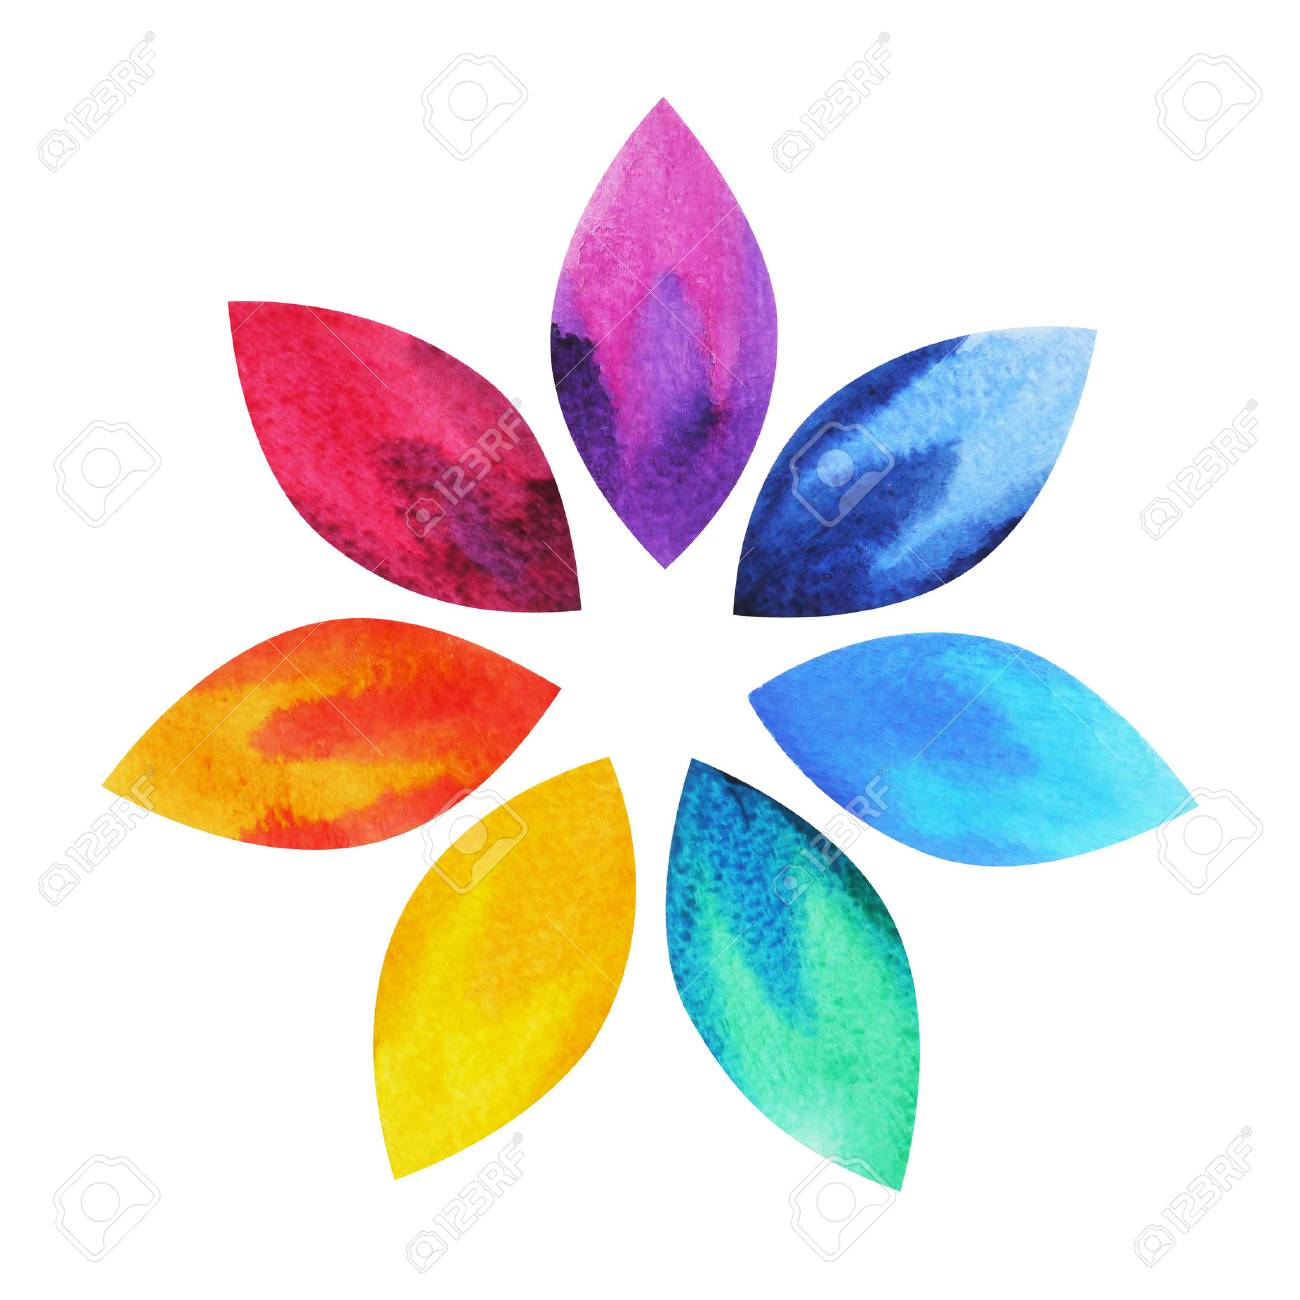 7 color of chakra sign symbol colorful lotus flower icon 7 color of chakra sign symbol colorful lotus flower icon watercolor painting hand drawn mightylinksfo